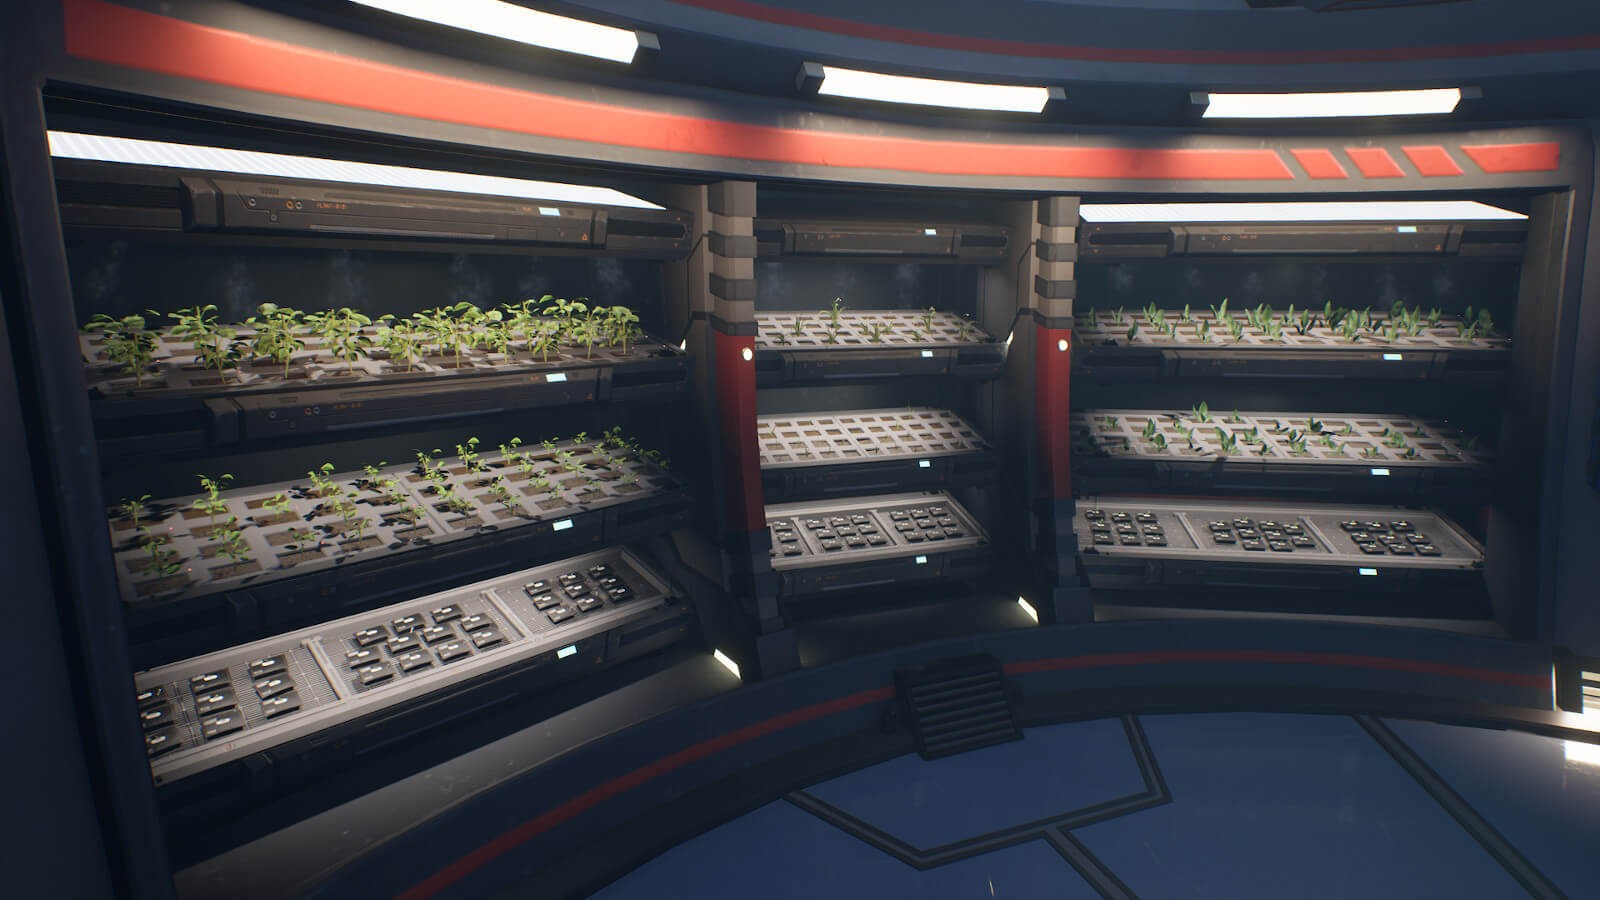 Rows of plants in science lab